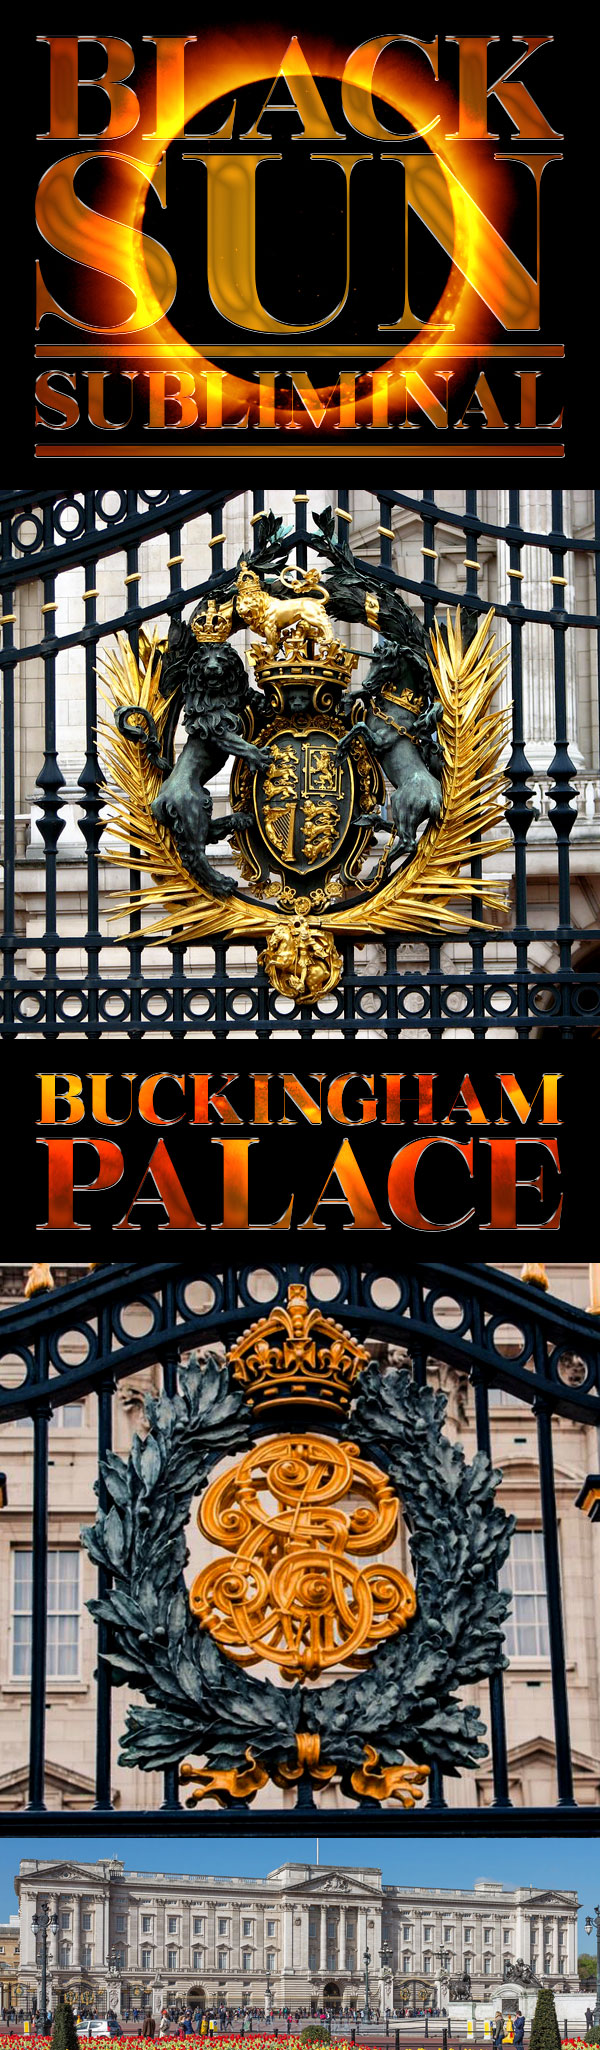 dark MonarKy - Buckingham Palace